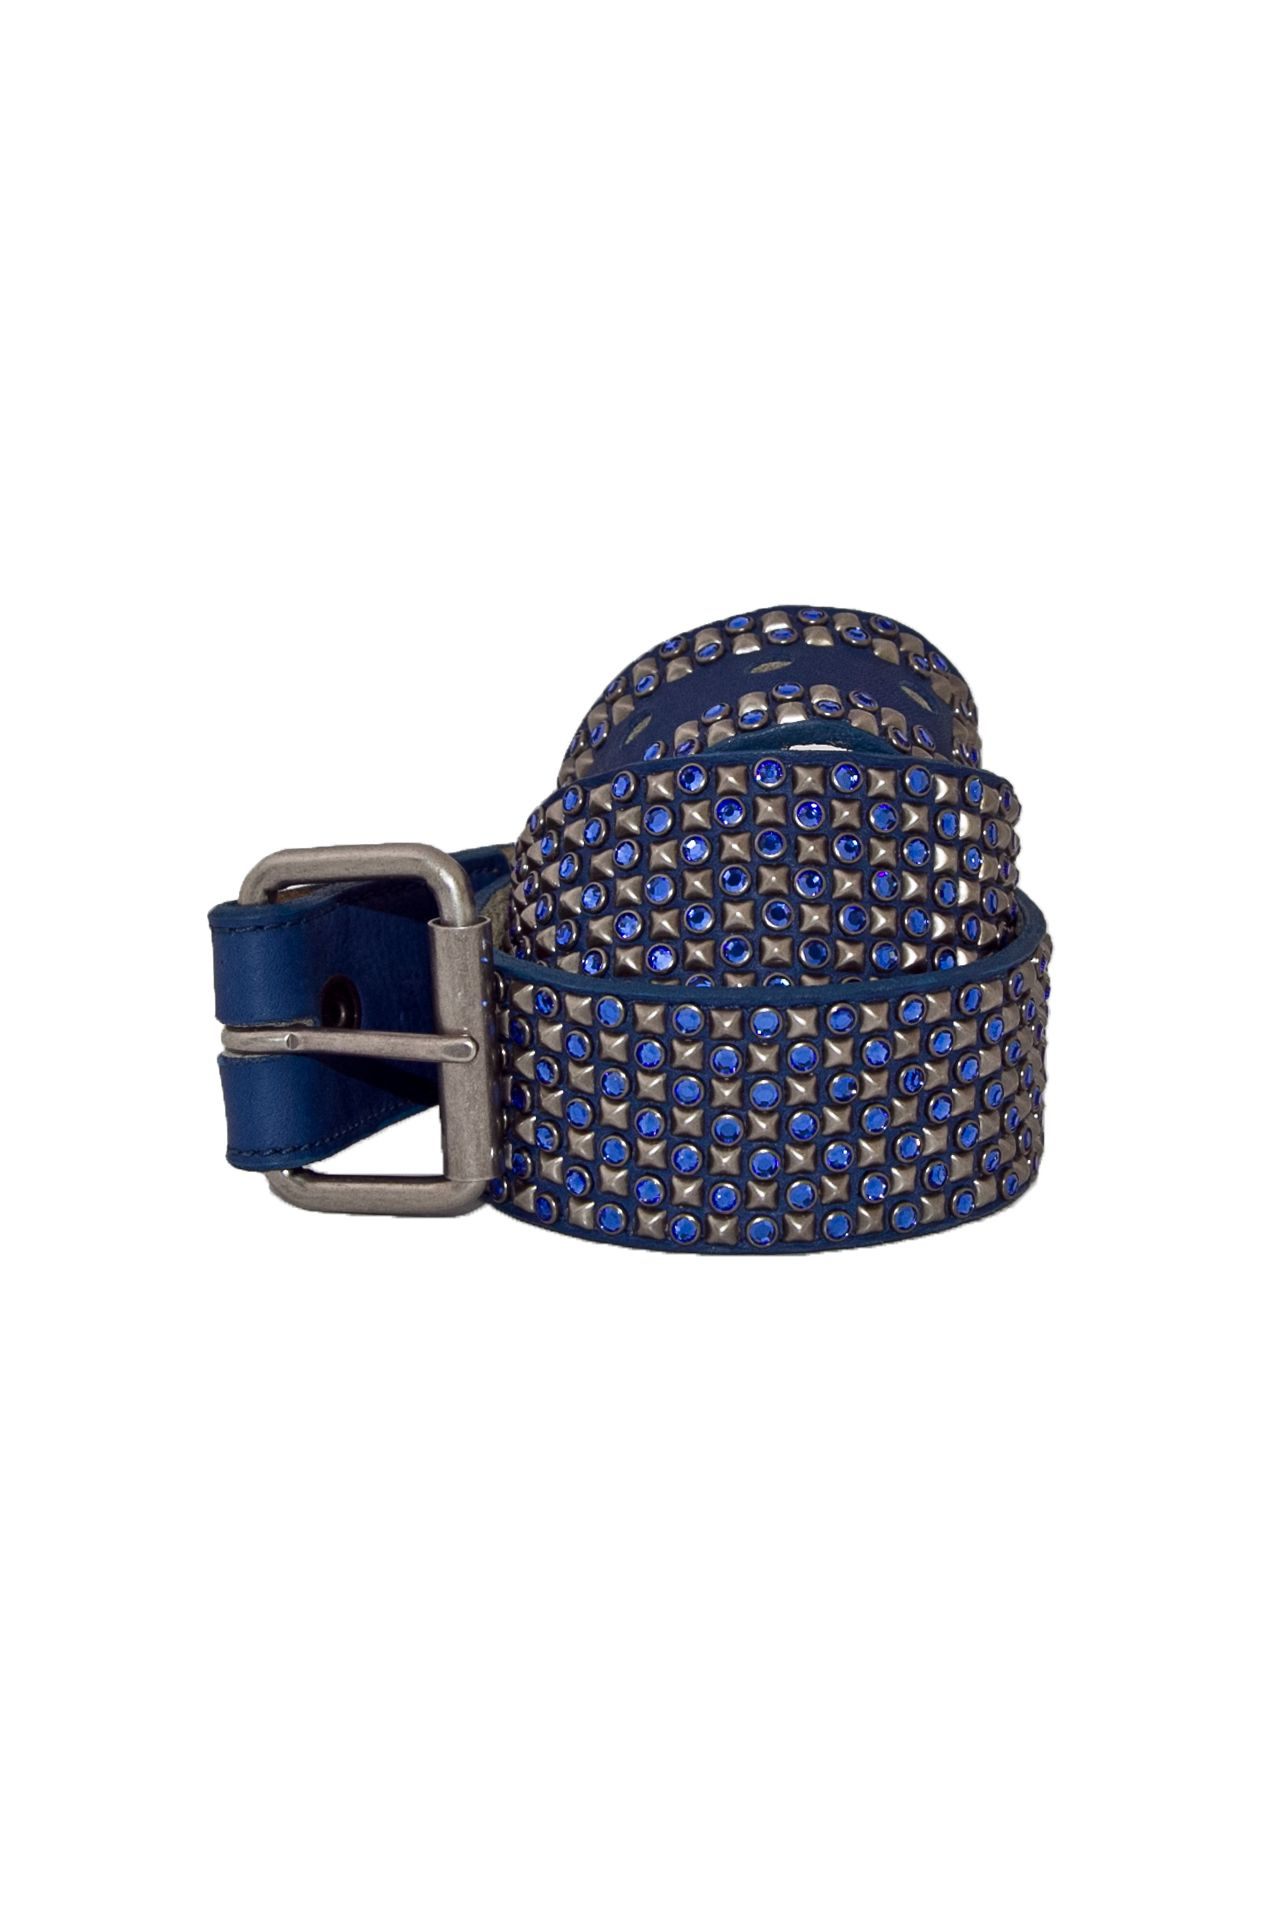 BLUE LEATHER BELT AURUM